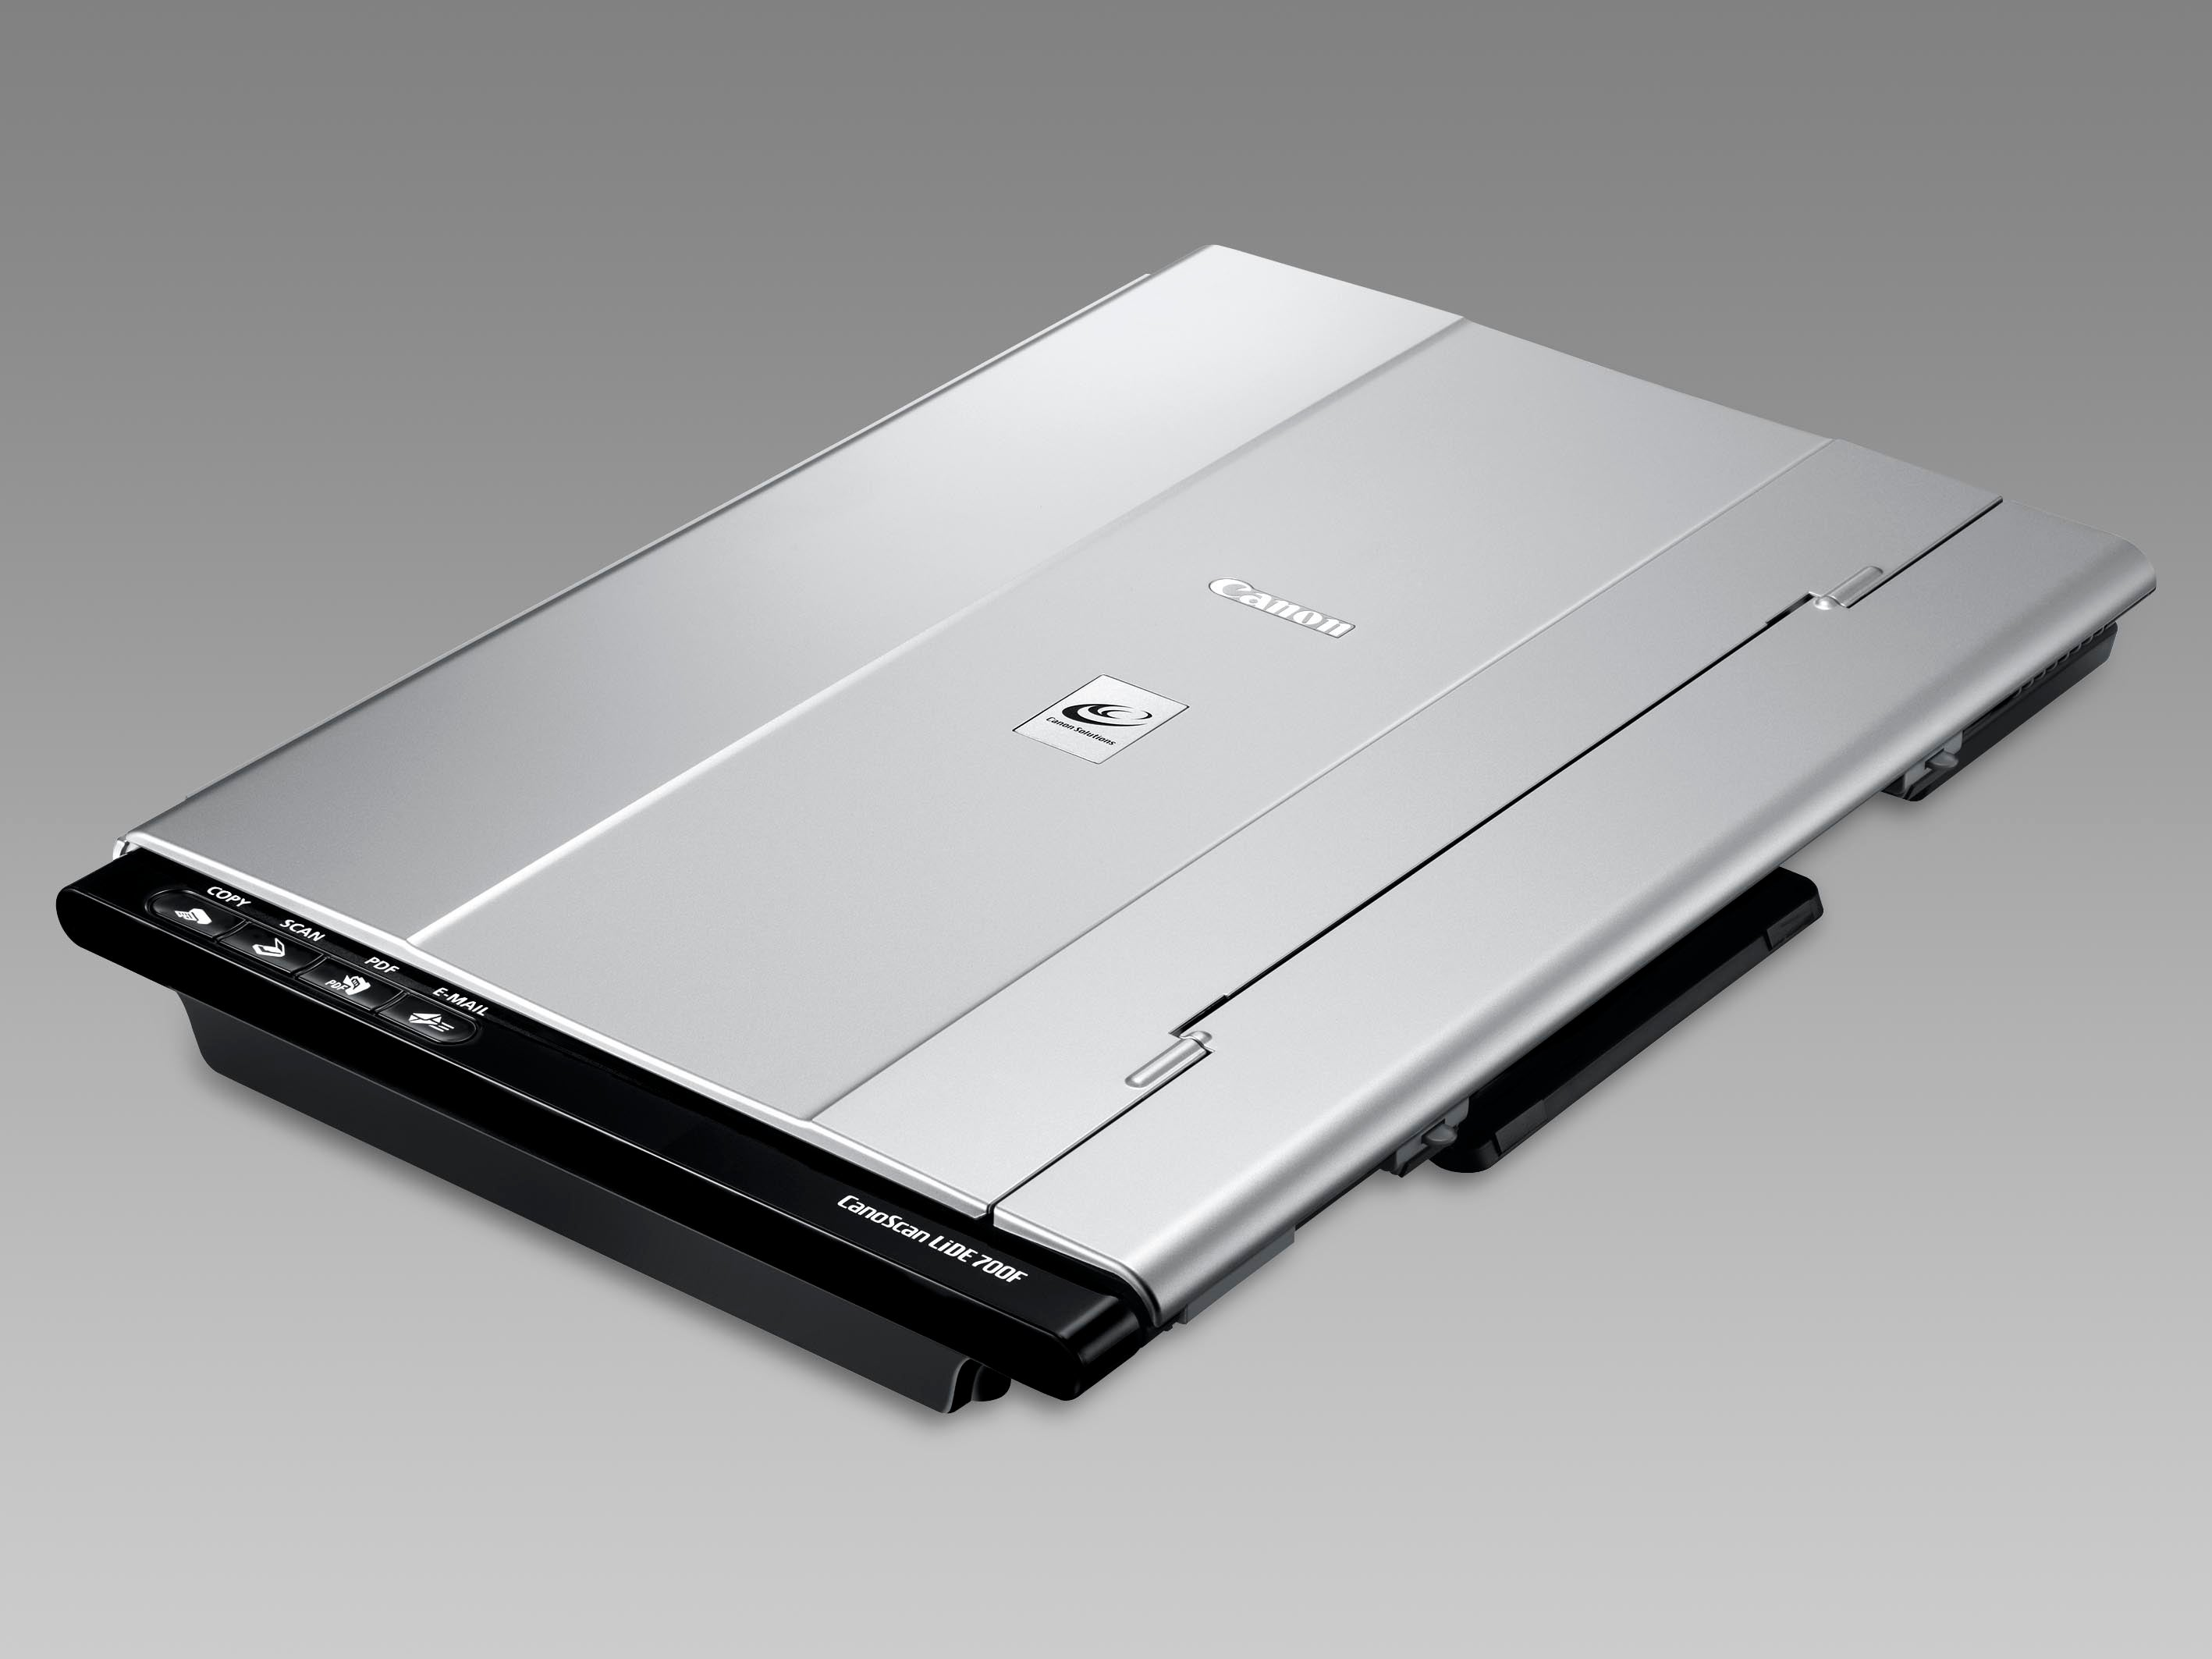 CANOSCAN LIDE 4200F DRIVERS FOR WINDOWS 7